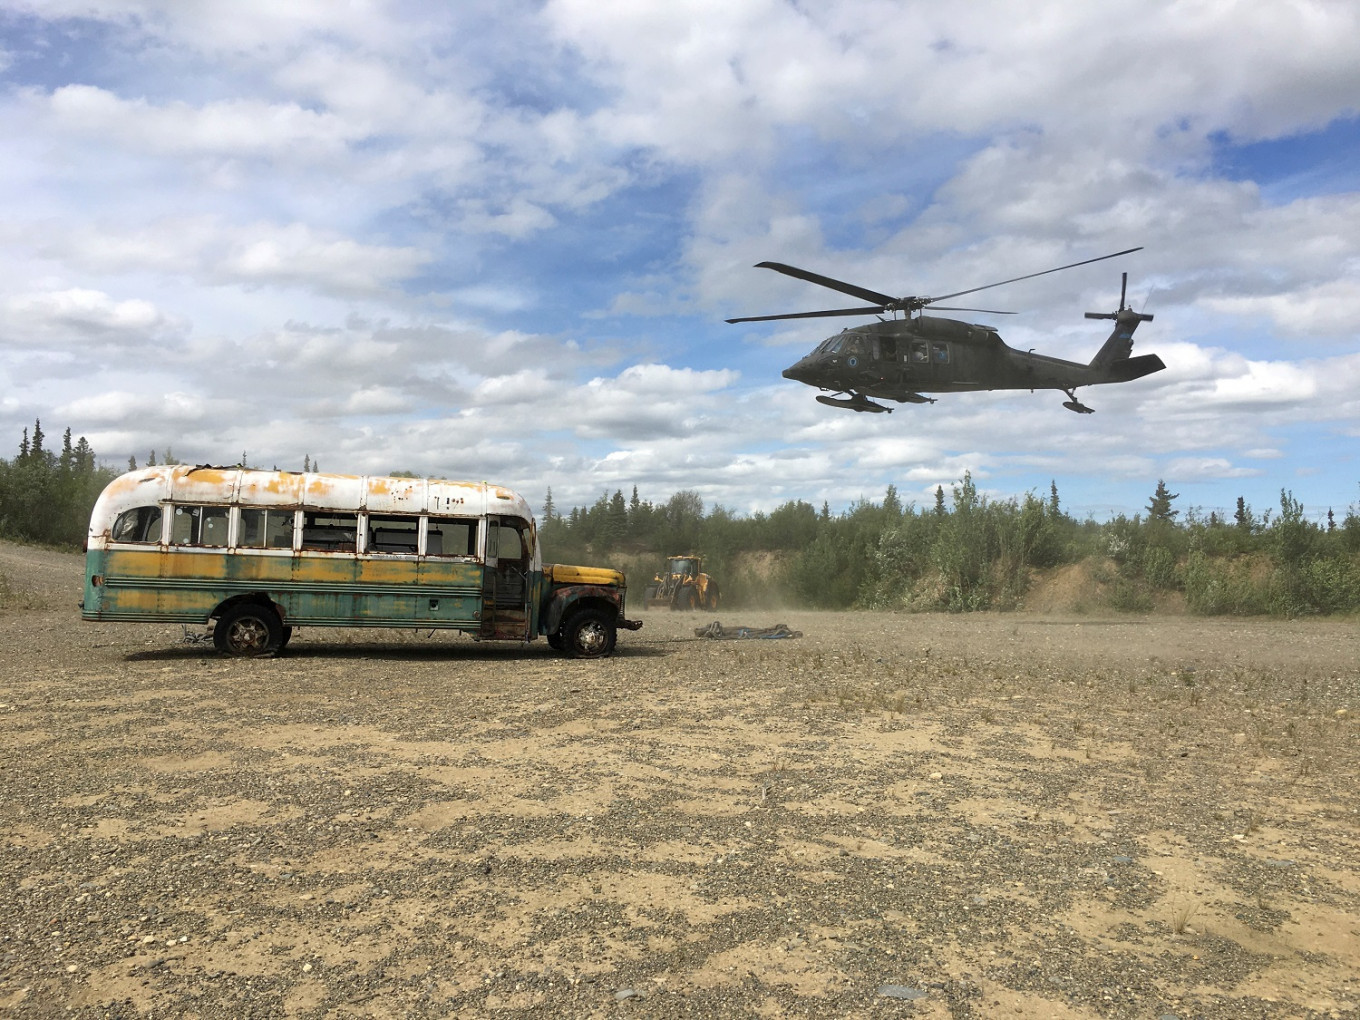 Famous bus from Into the Wild movie removed from Alaska wilderness